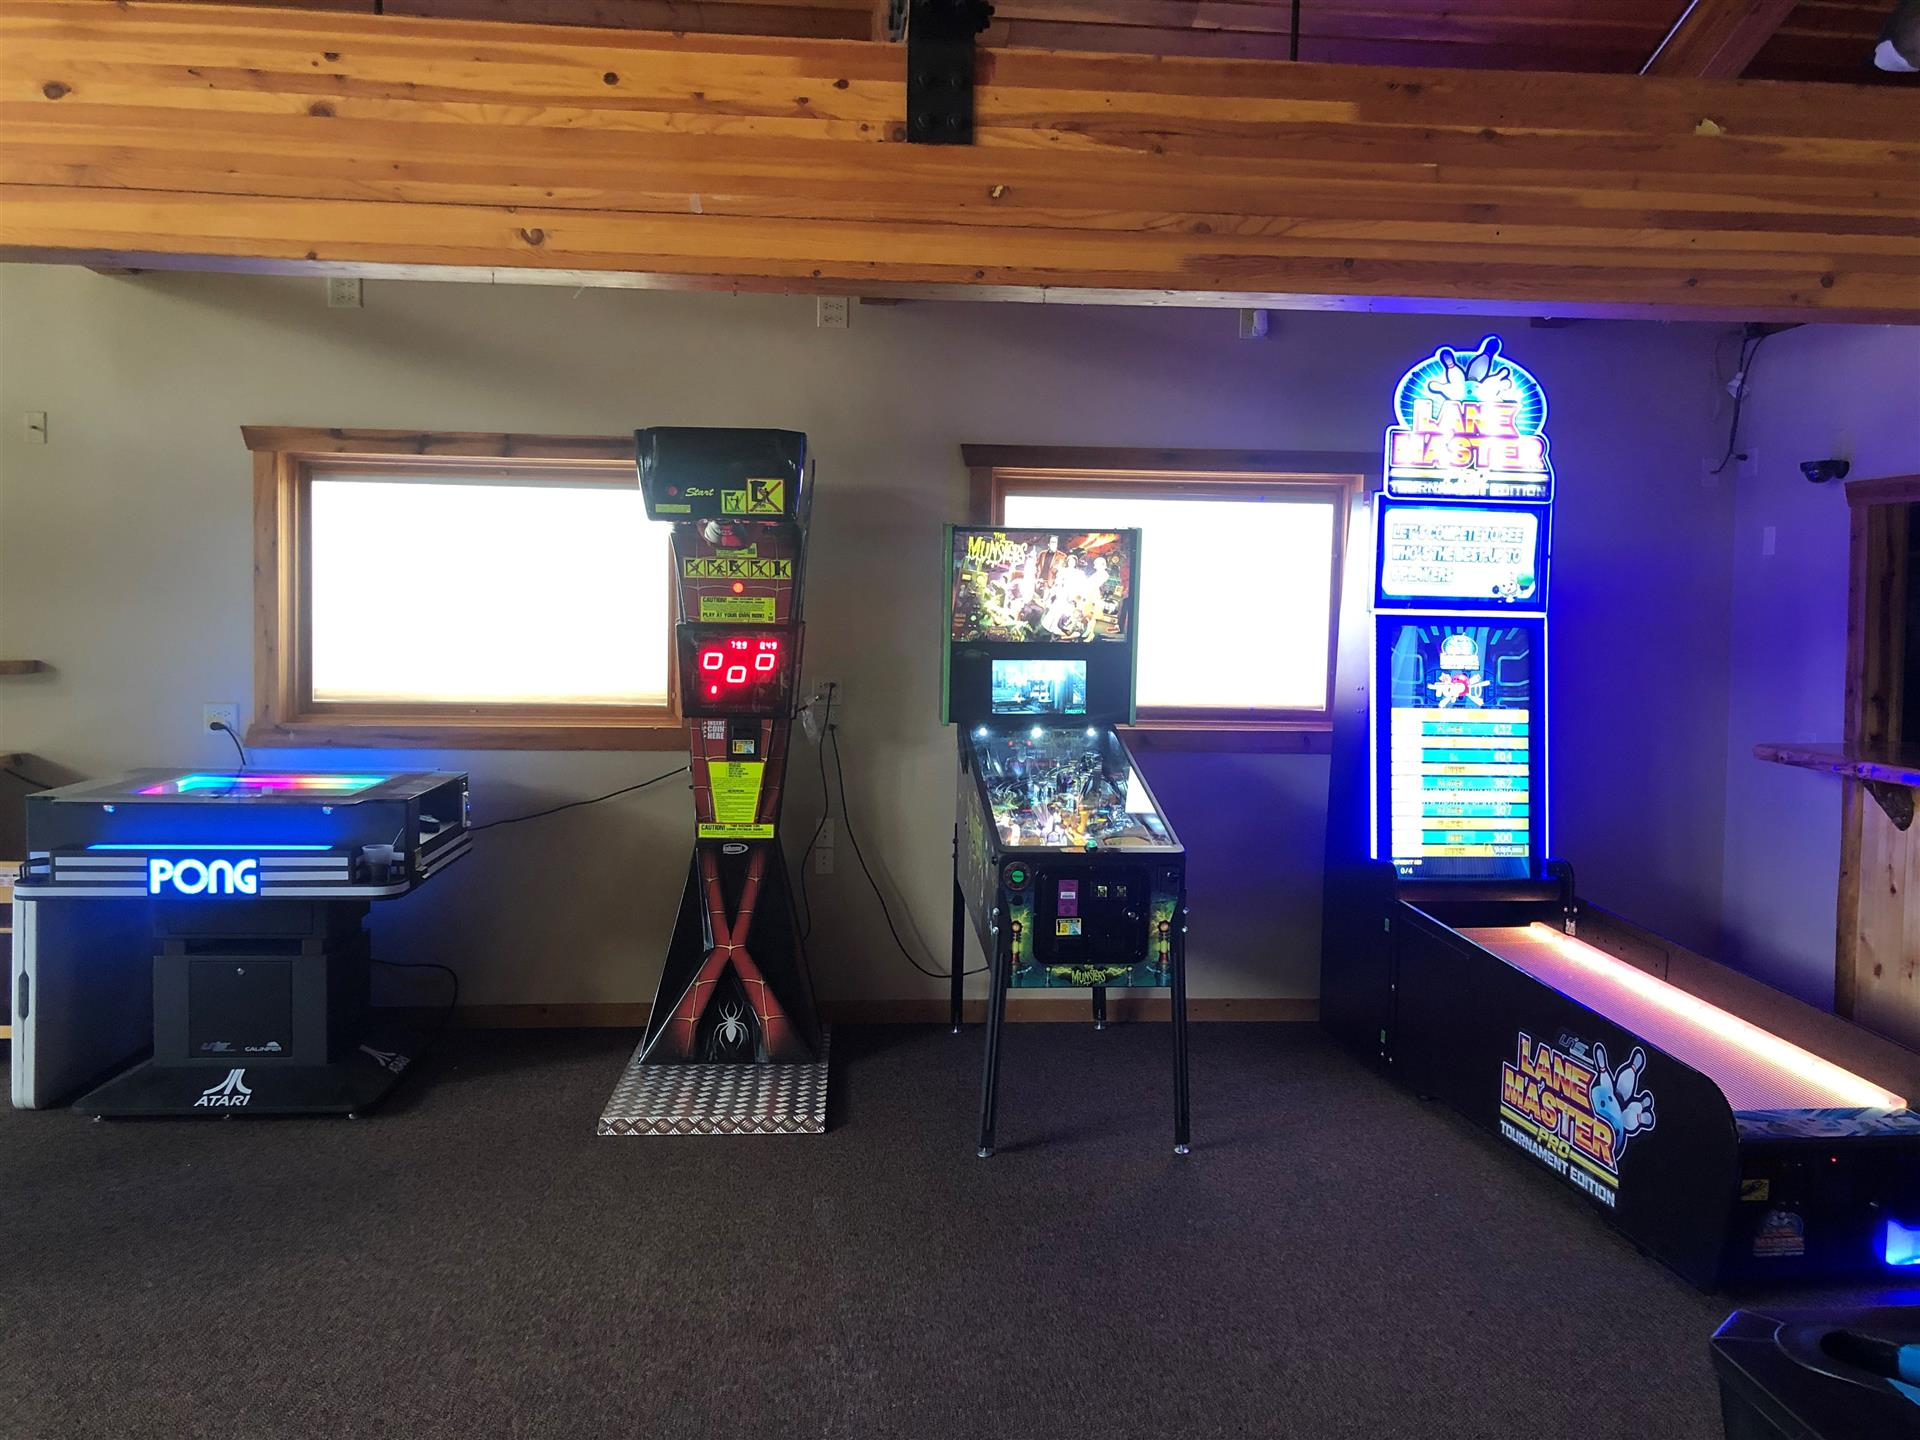 4 arcade games in a room